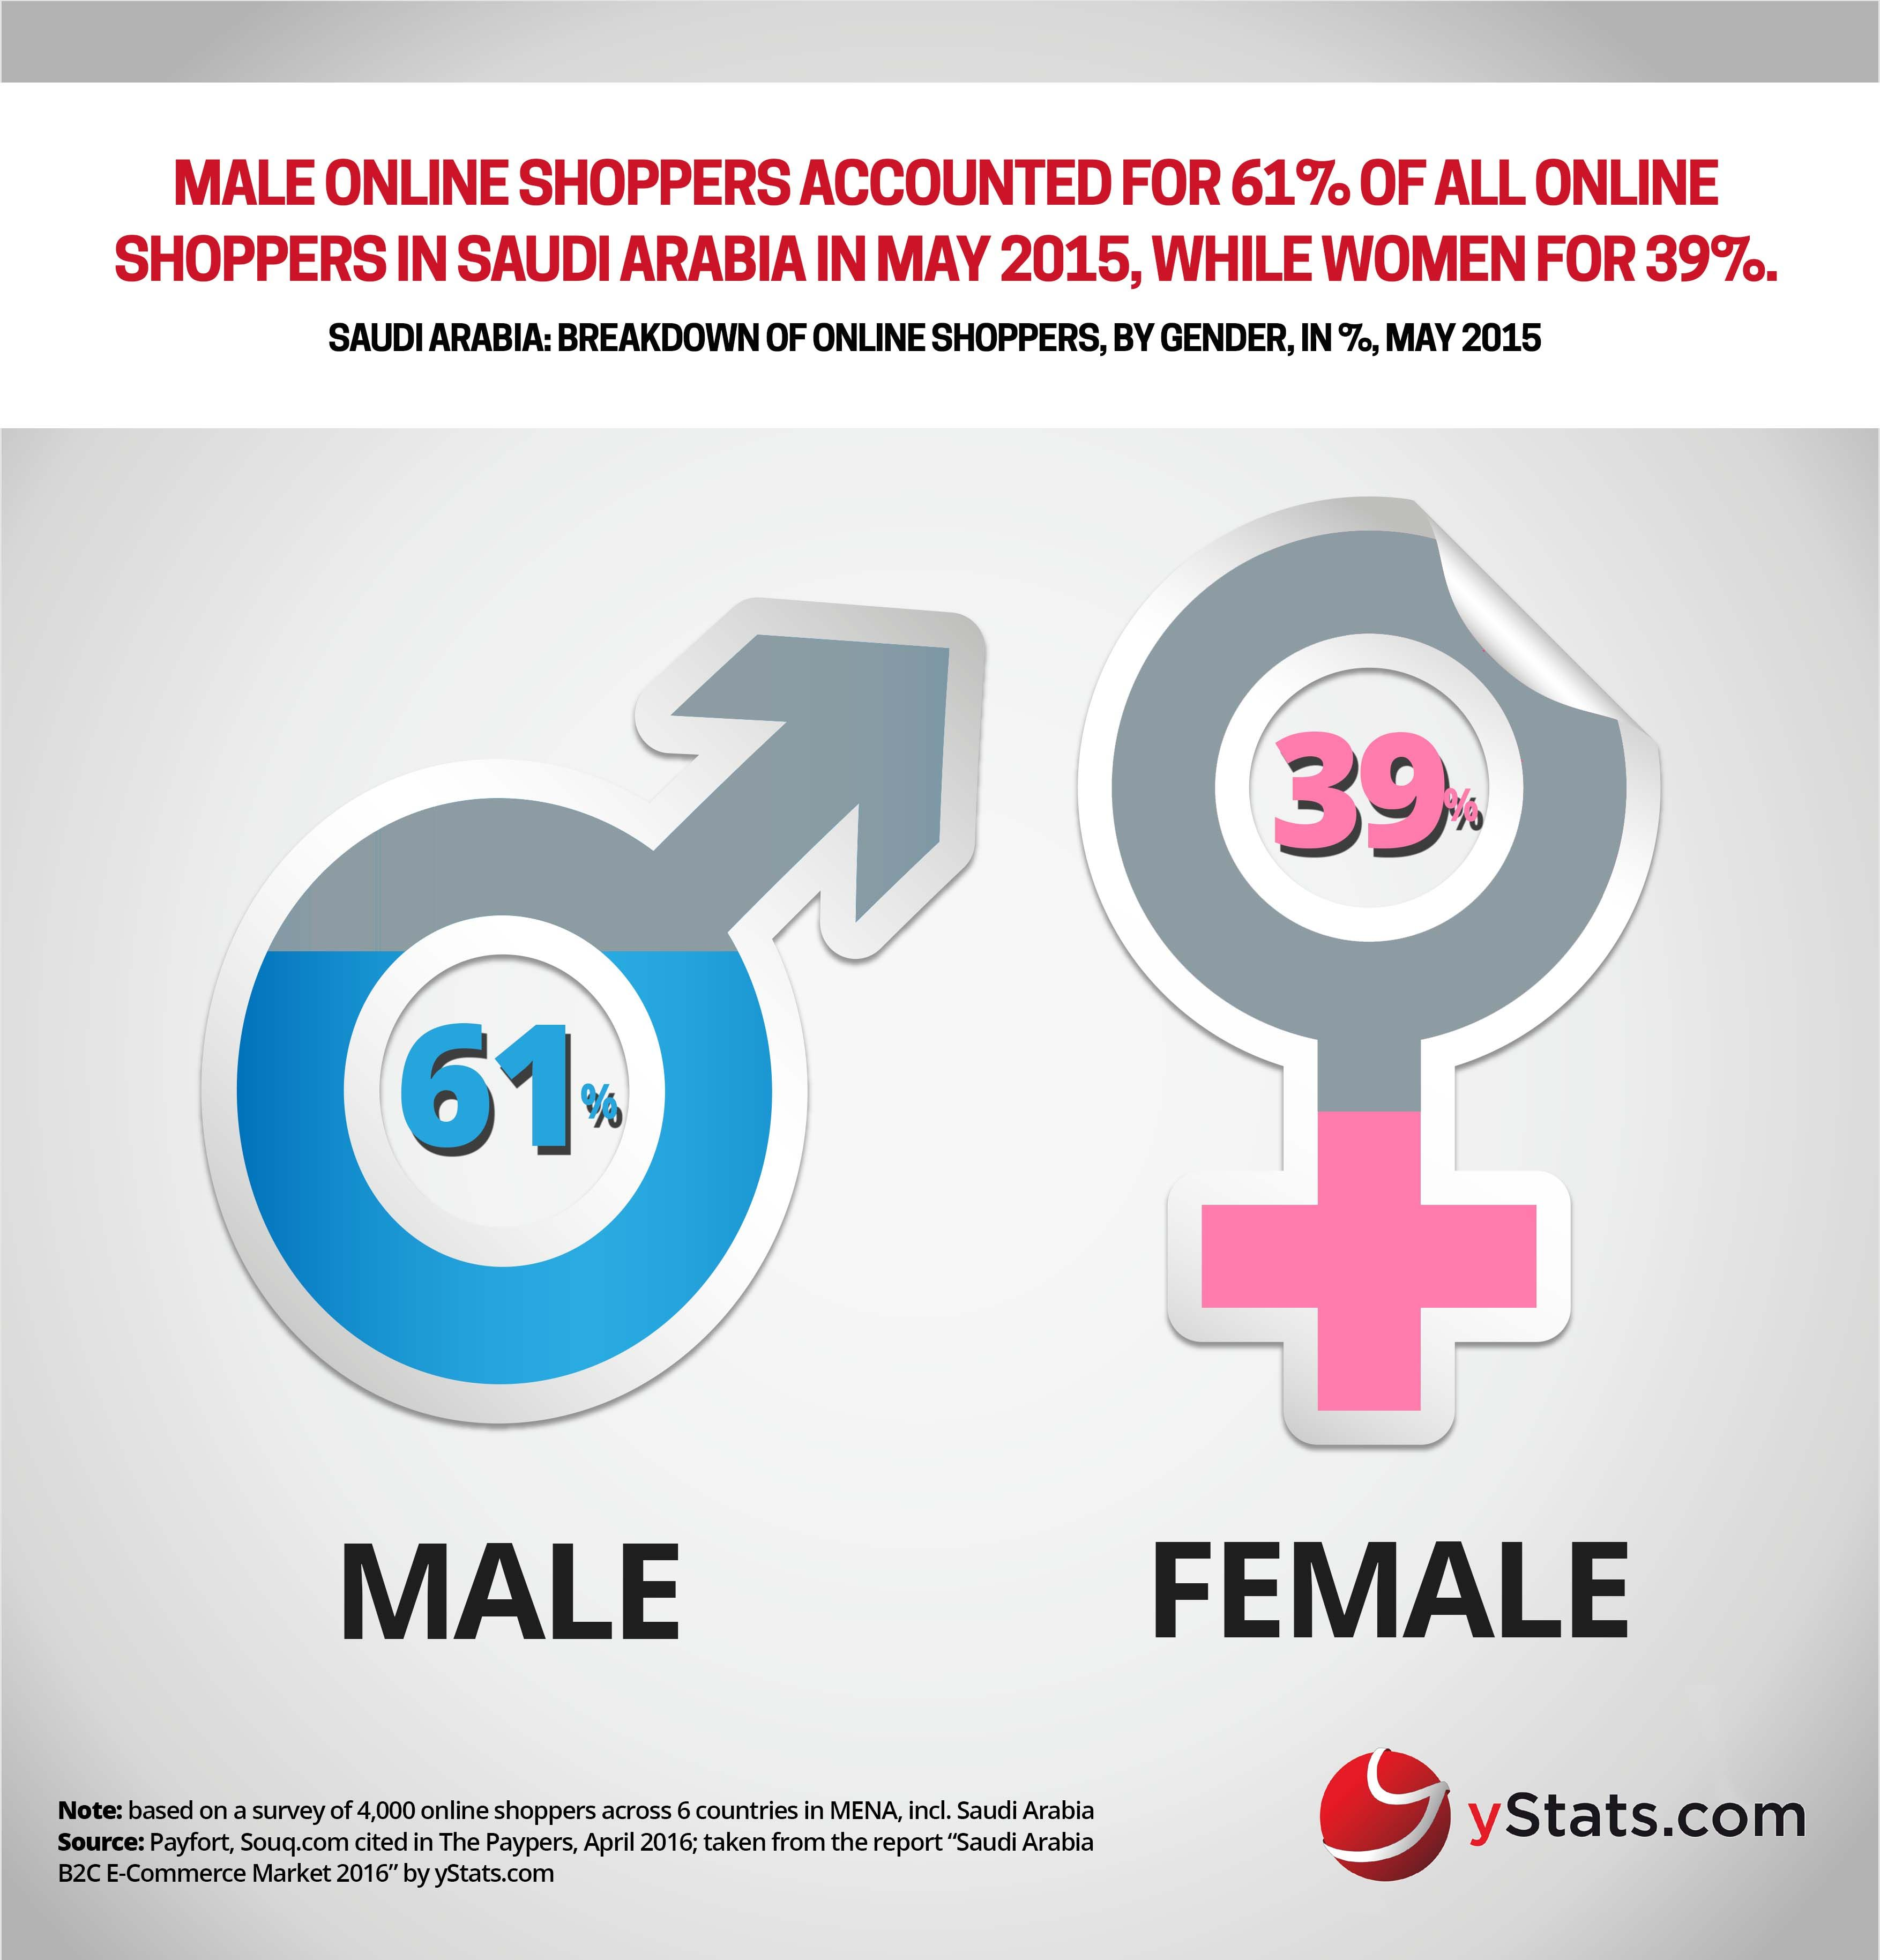 B2C E-Commerce Market 2016  This shows that the gender based